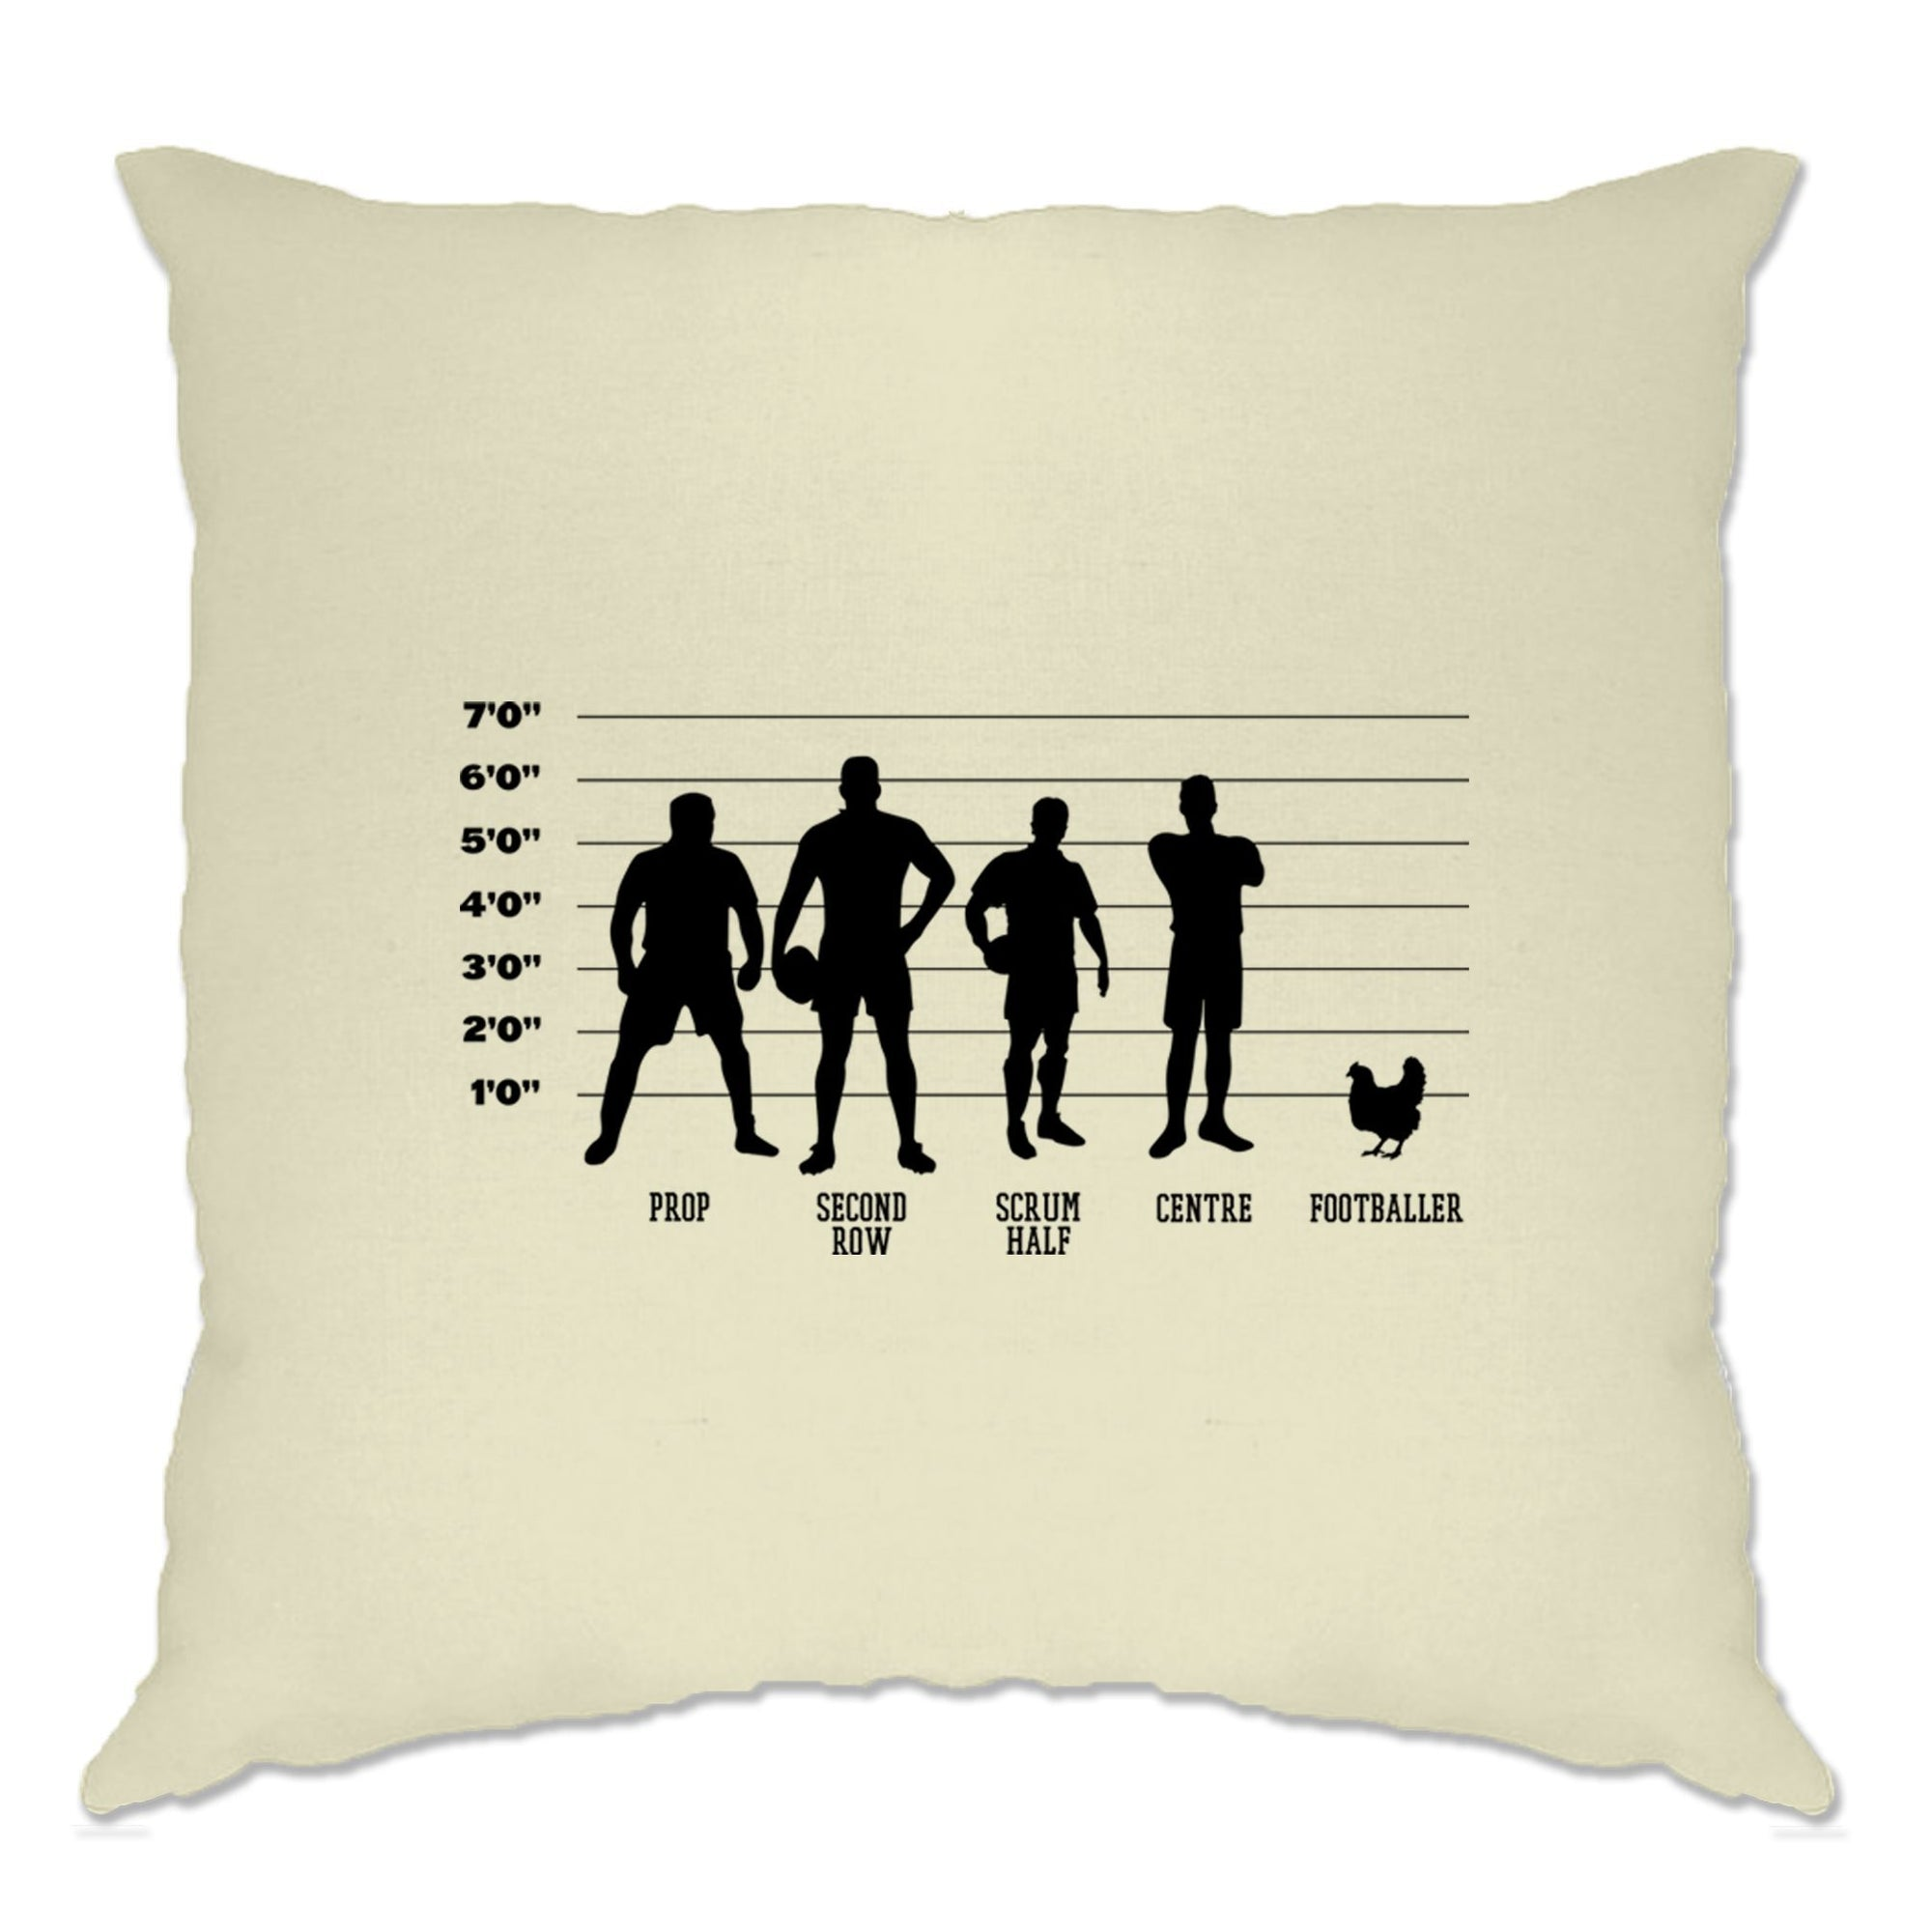 Joke Sports Cushion Cover Rugby Vs Football Chicken Lineup